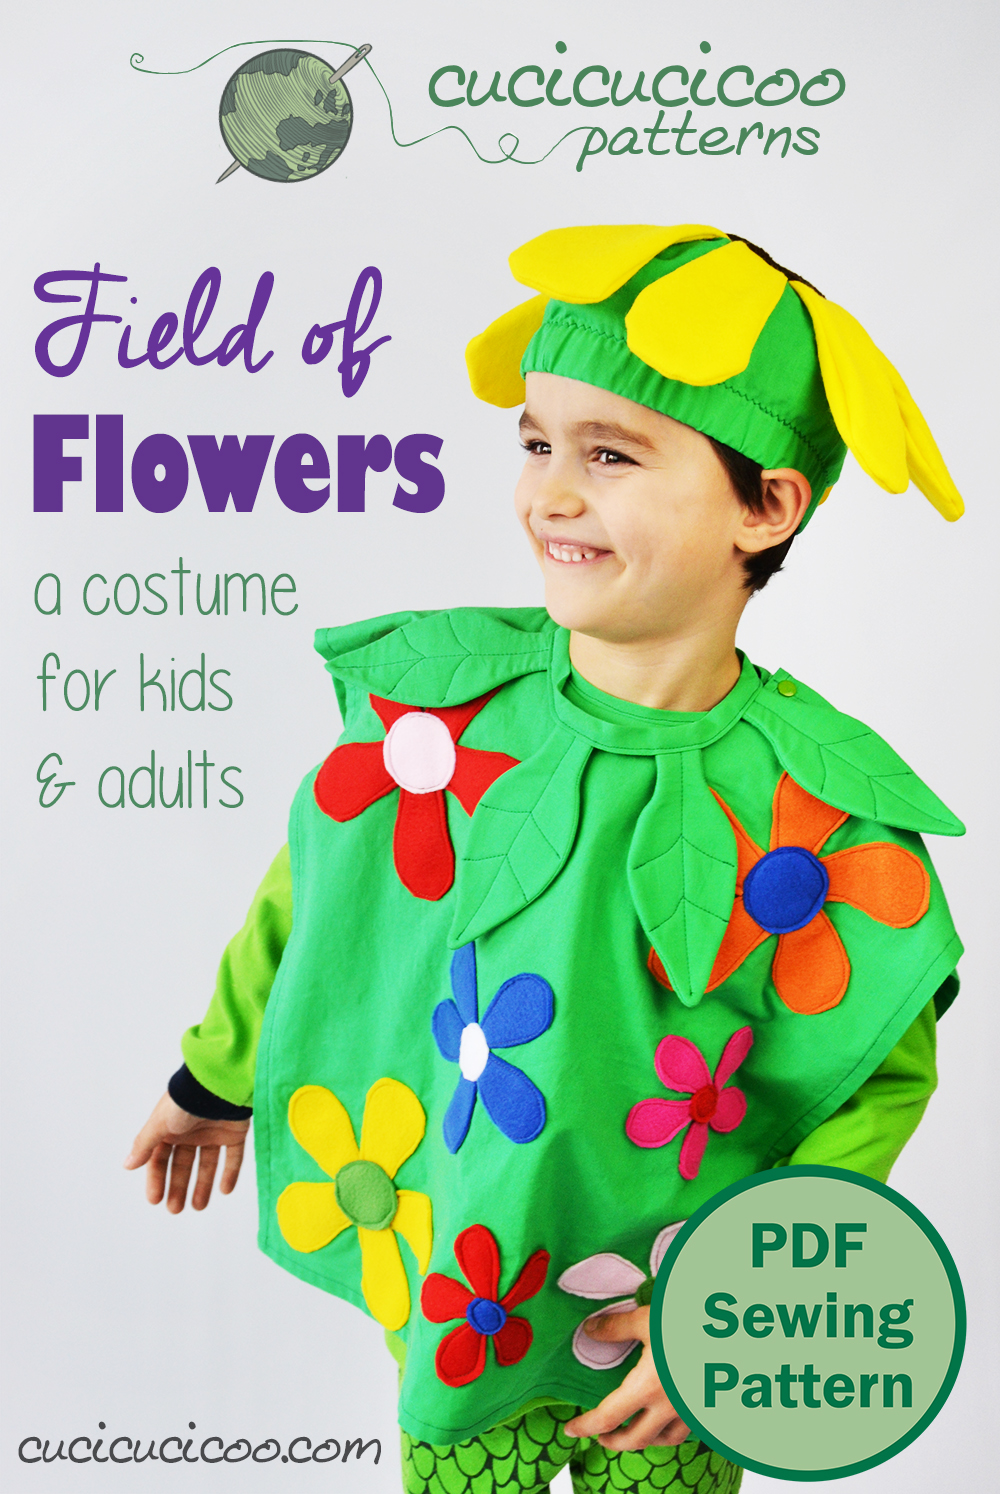 Everyone loves a bright and happy homemade costume, especially if it's covered in flowers! The new Field of Flowers costume pattern has body, hat and neck piece in 11 sizes, so everyone in the family can dress up! #diycostume #sewingpattern